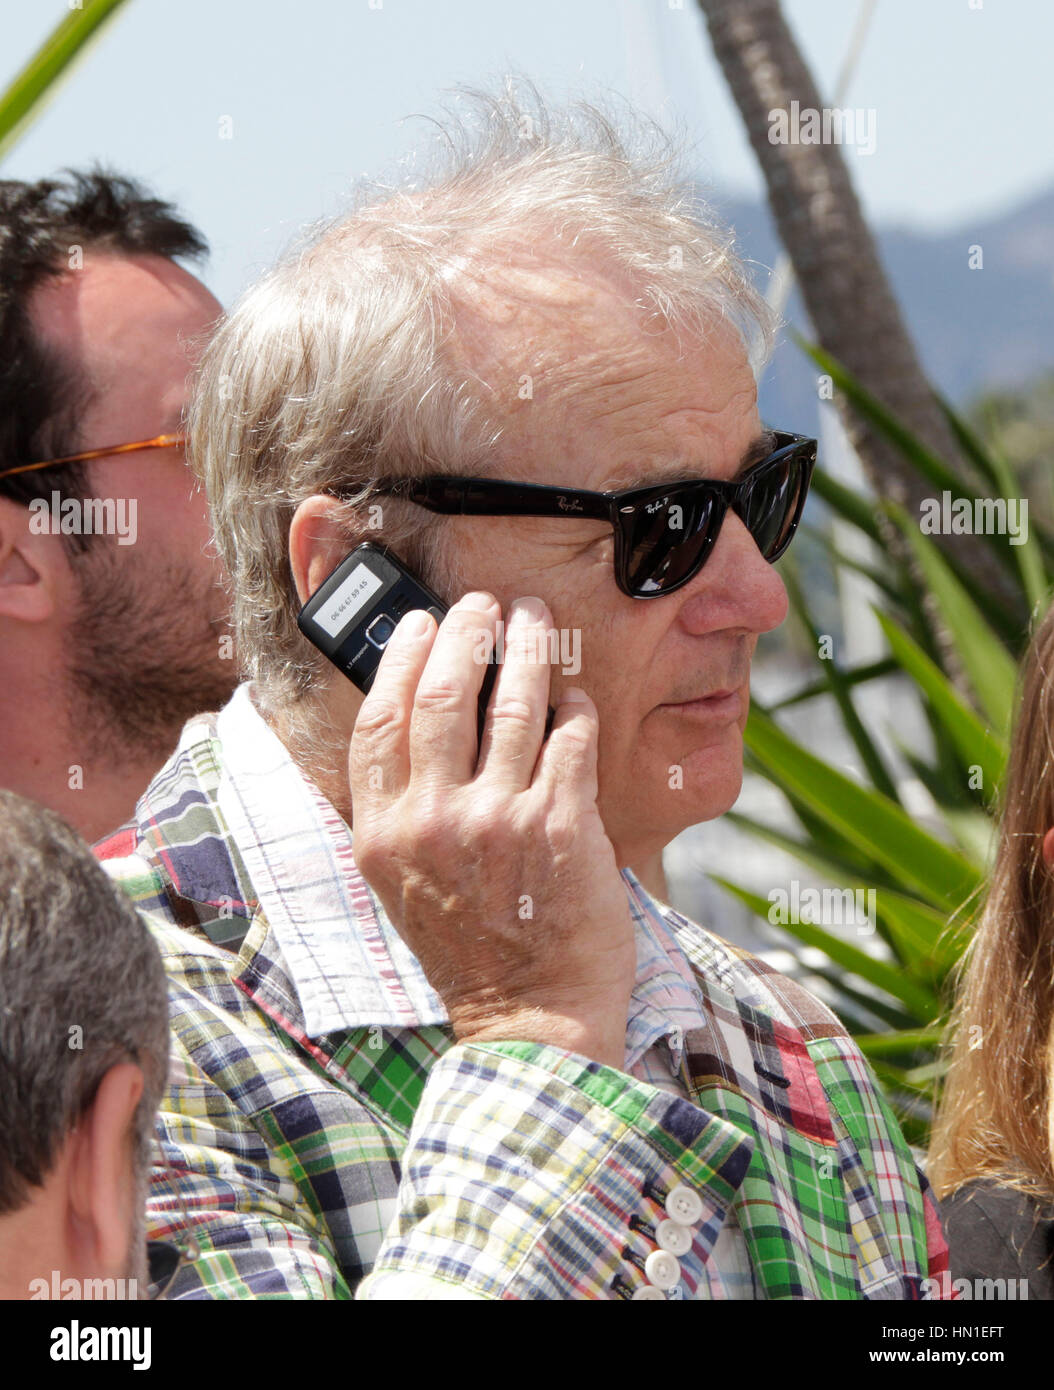 Bill Murray arrives at the photo call for the film, 'Moonrise Kingdom' during the 65th Cannes Film Festival - Stock Image